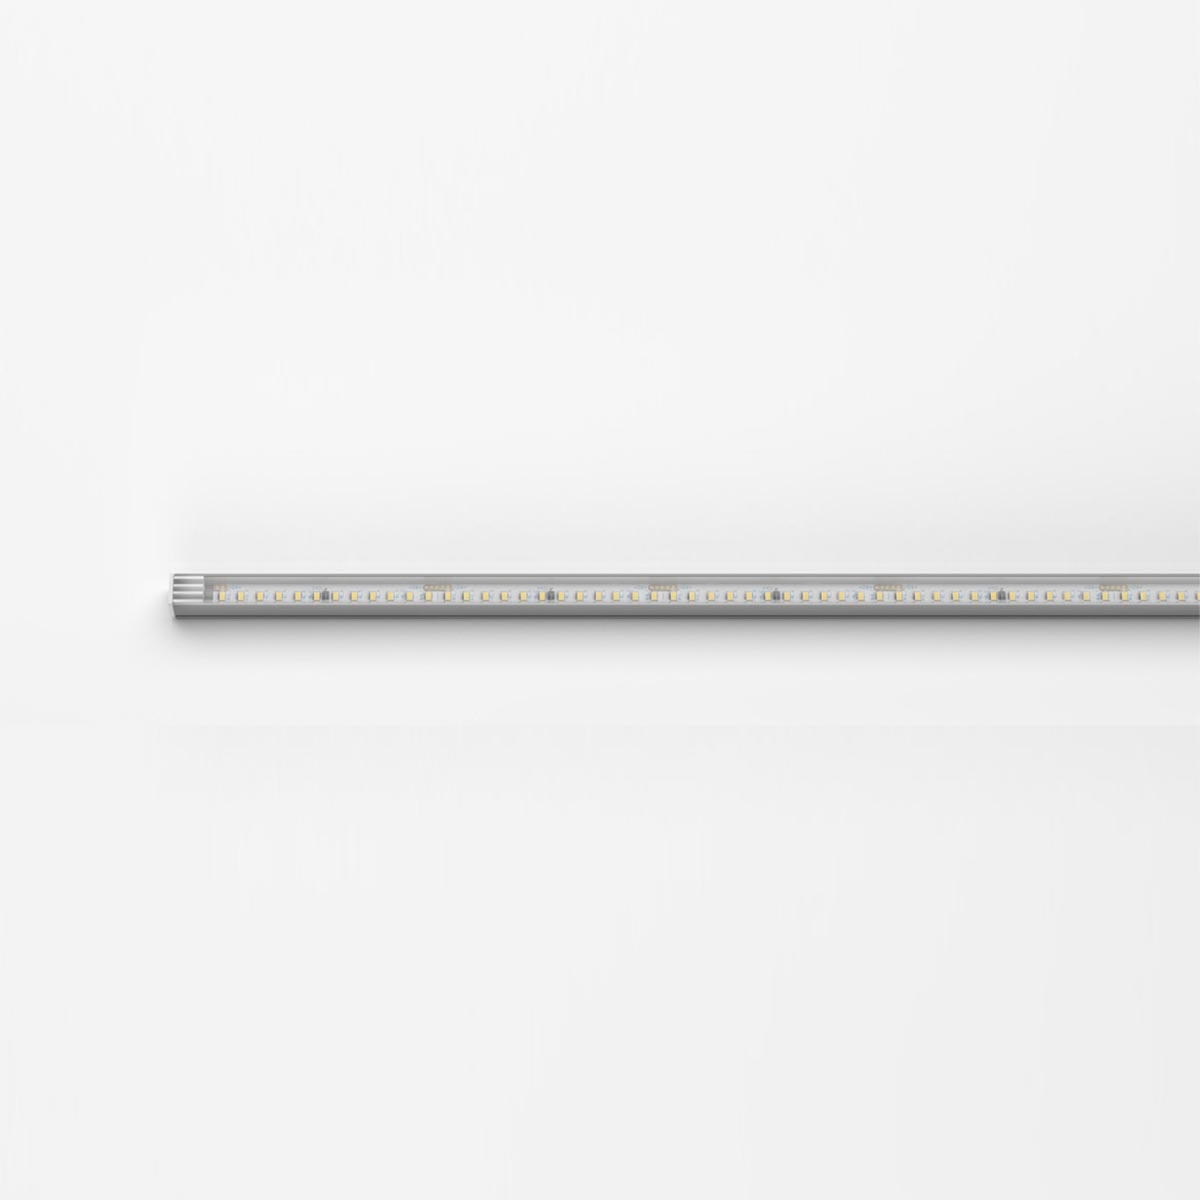 Slim - Ultra Compact LED Strip with Homogeneous Light Output (7W or 14W)